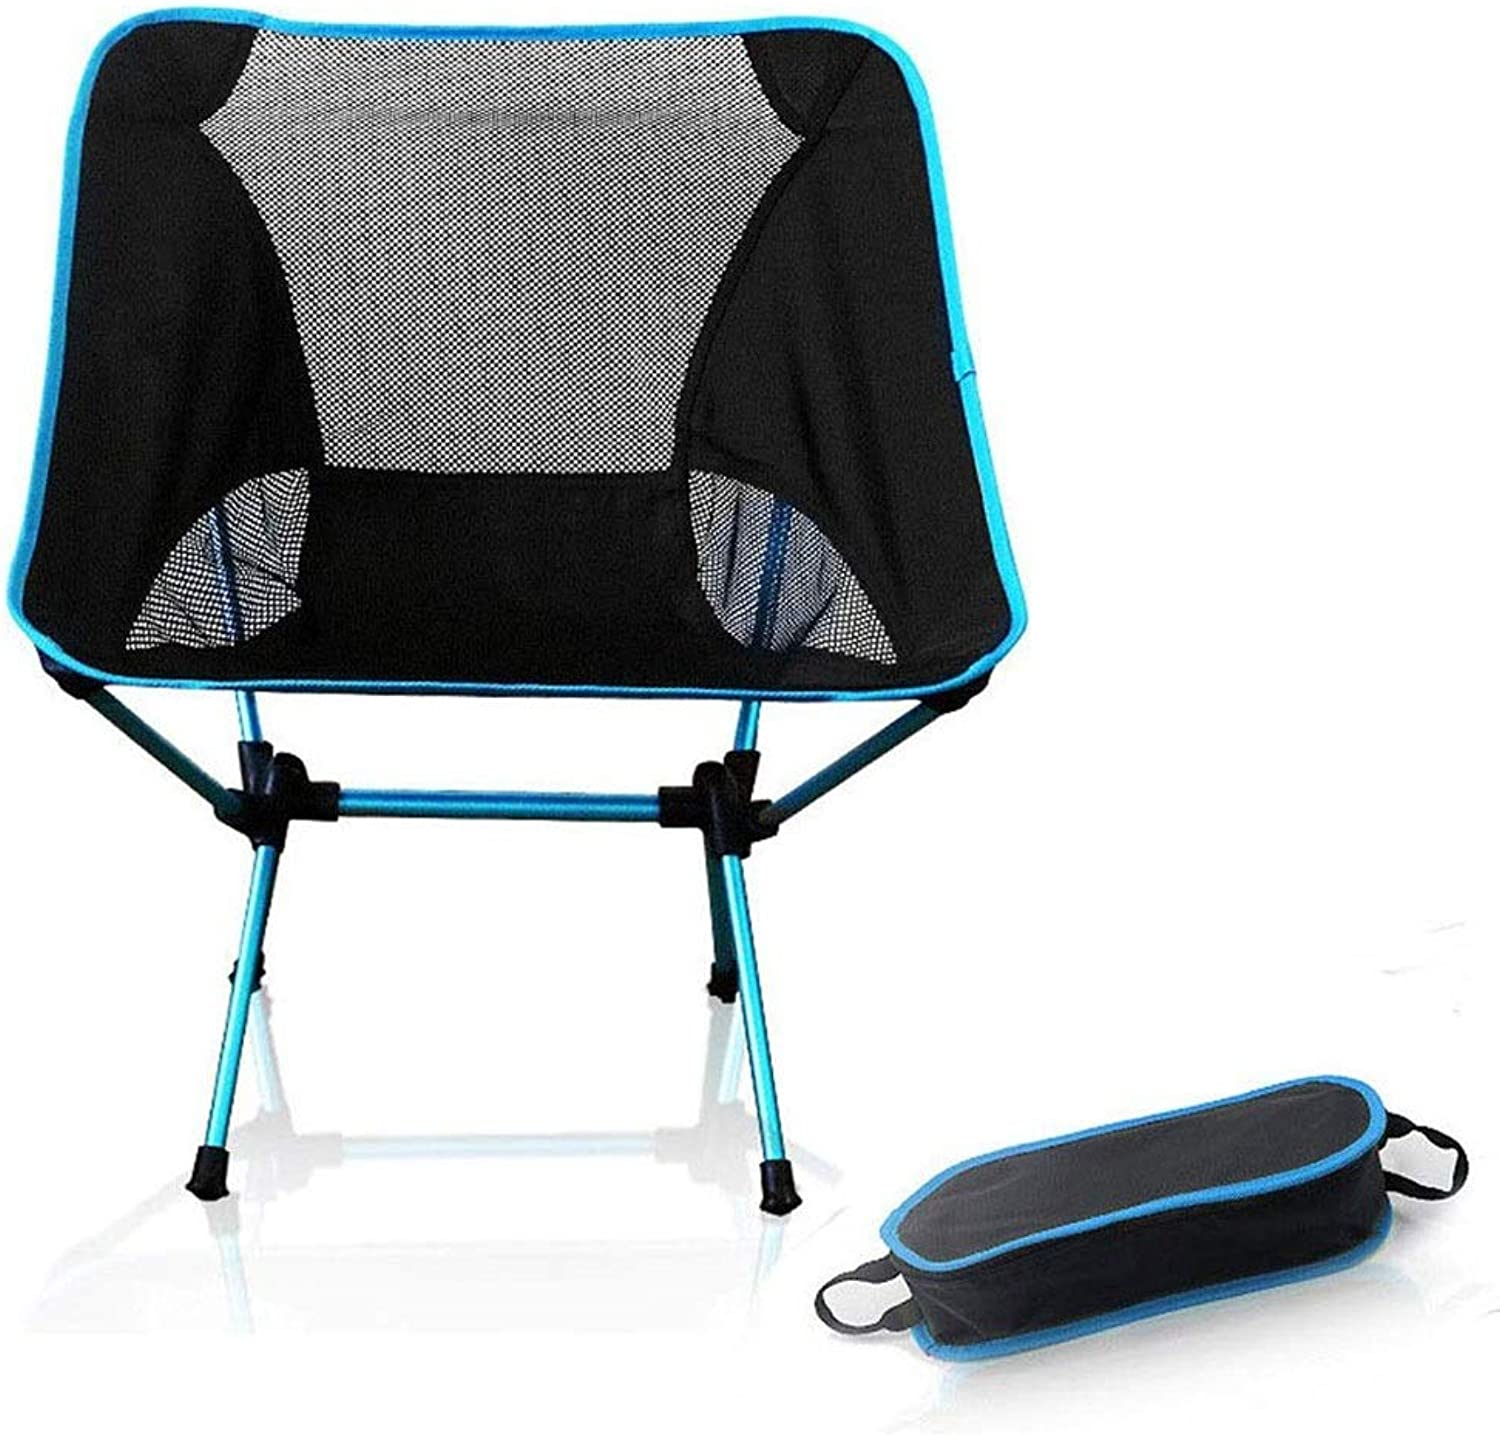 Tao-Miy Camping Folding Chair Portable Chair Ultra Light Aluminum Fishing Chair Leisure Party Chair Sketch Chair (color   bluee)